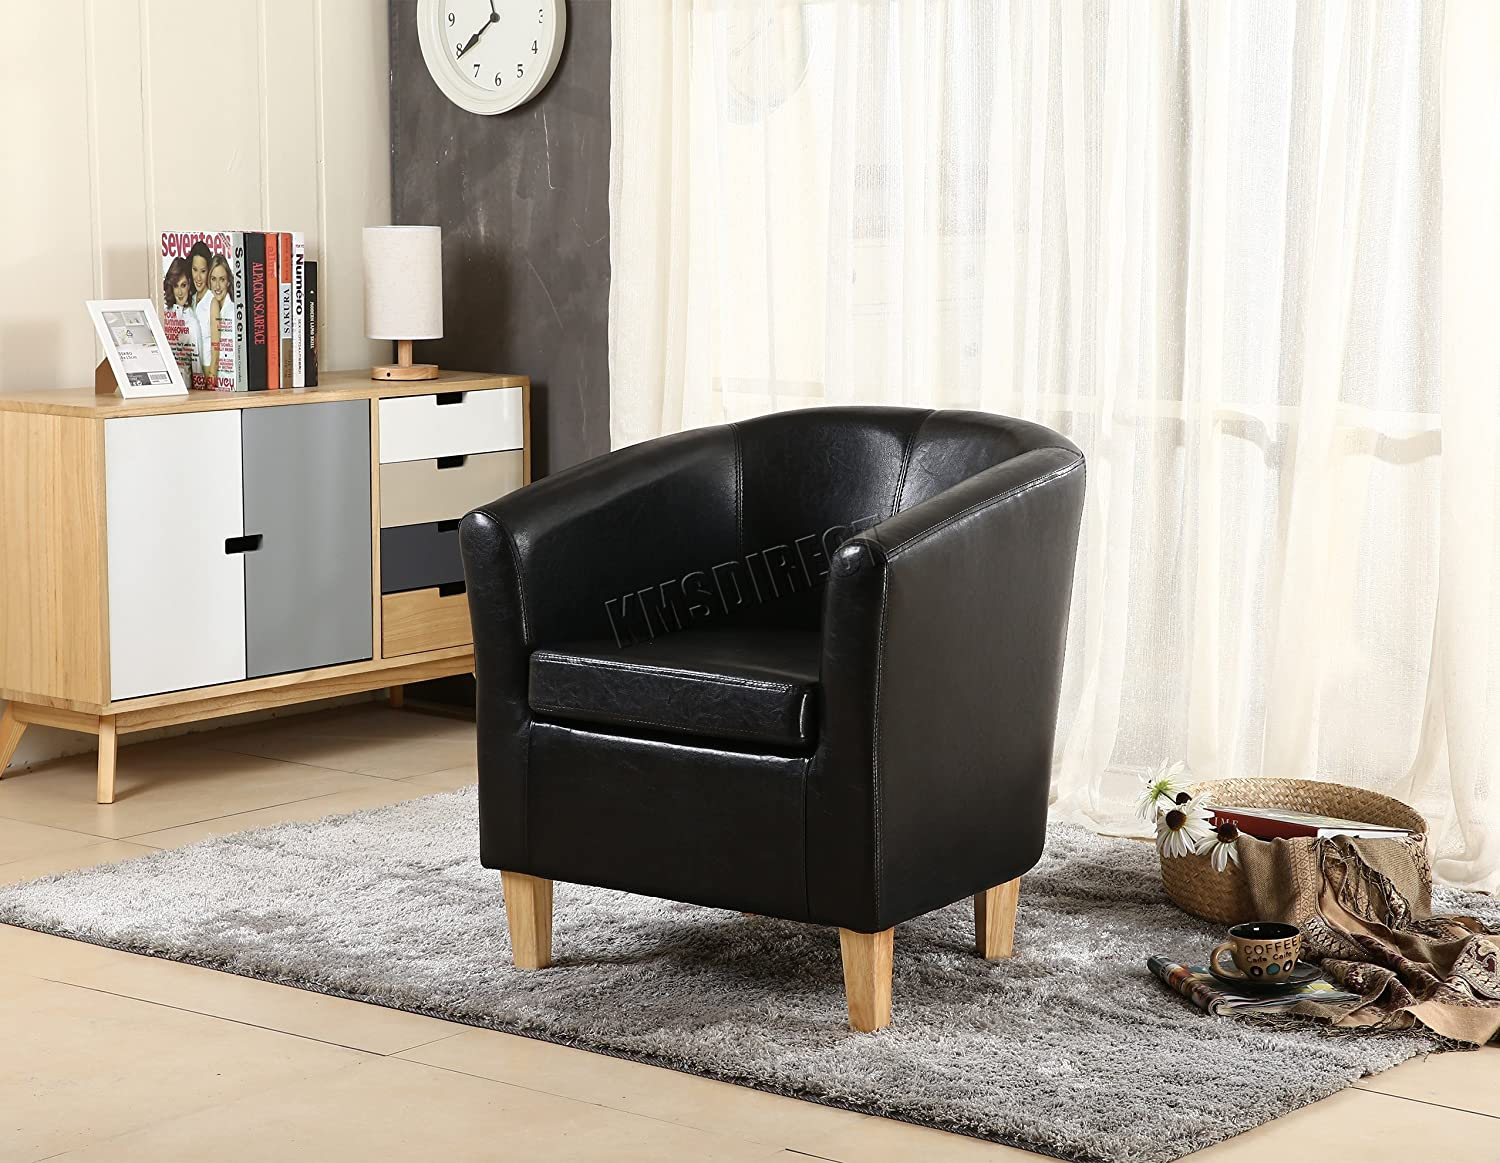 FoxHunter Faux Leather Tub Chair Armchair Dining Living Room Lounge Office Modern Furniture Black New KMS